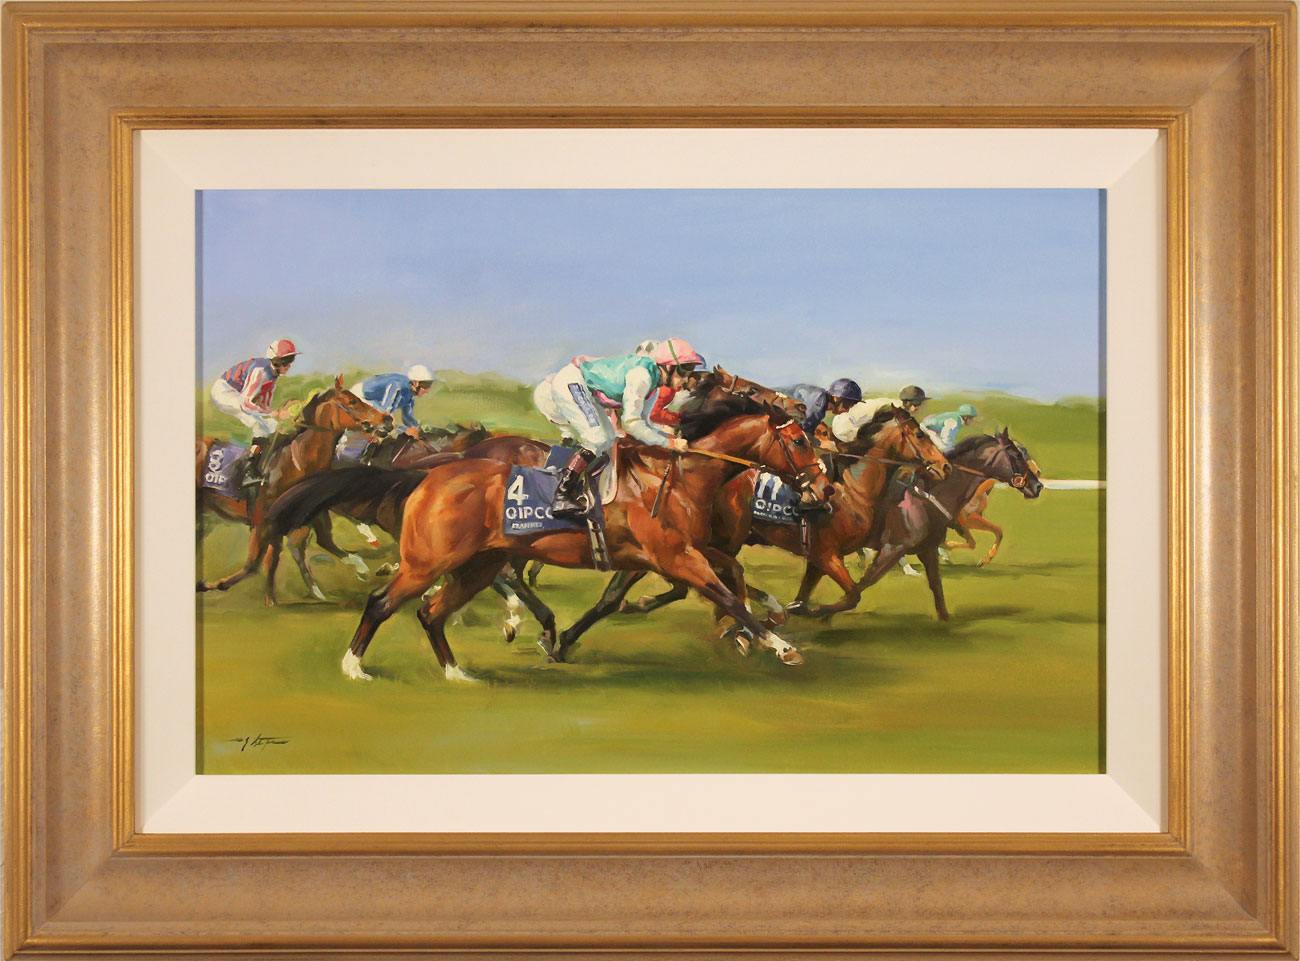 Jacqueline Stanhope, Original oil painting on canvas, Frankel's 2000 Guineas, click to enlarge